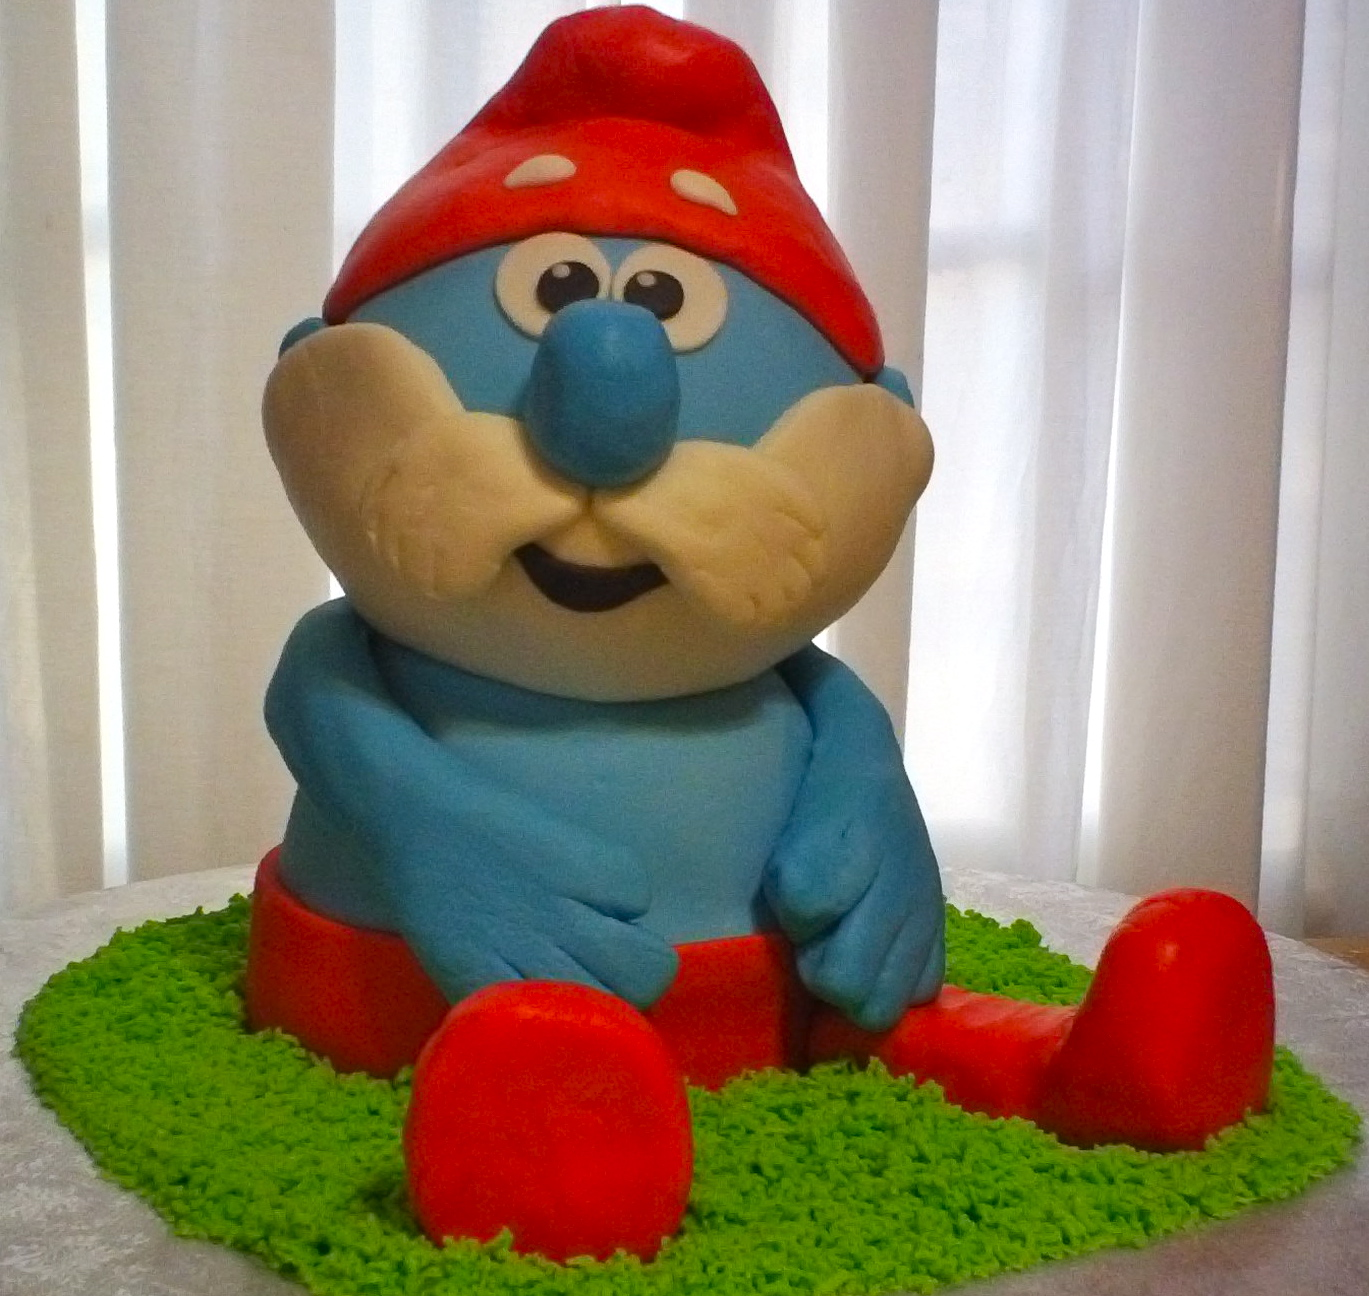 Debbies Little Cakes Papa Smurf